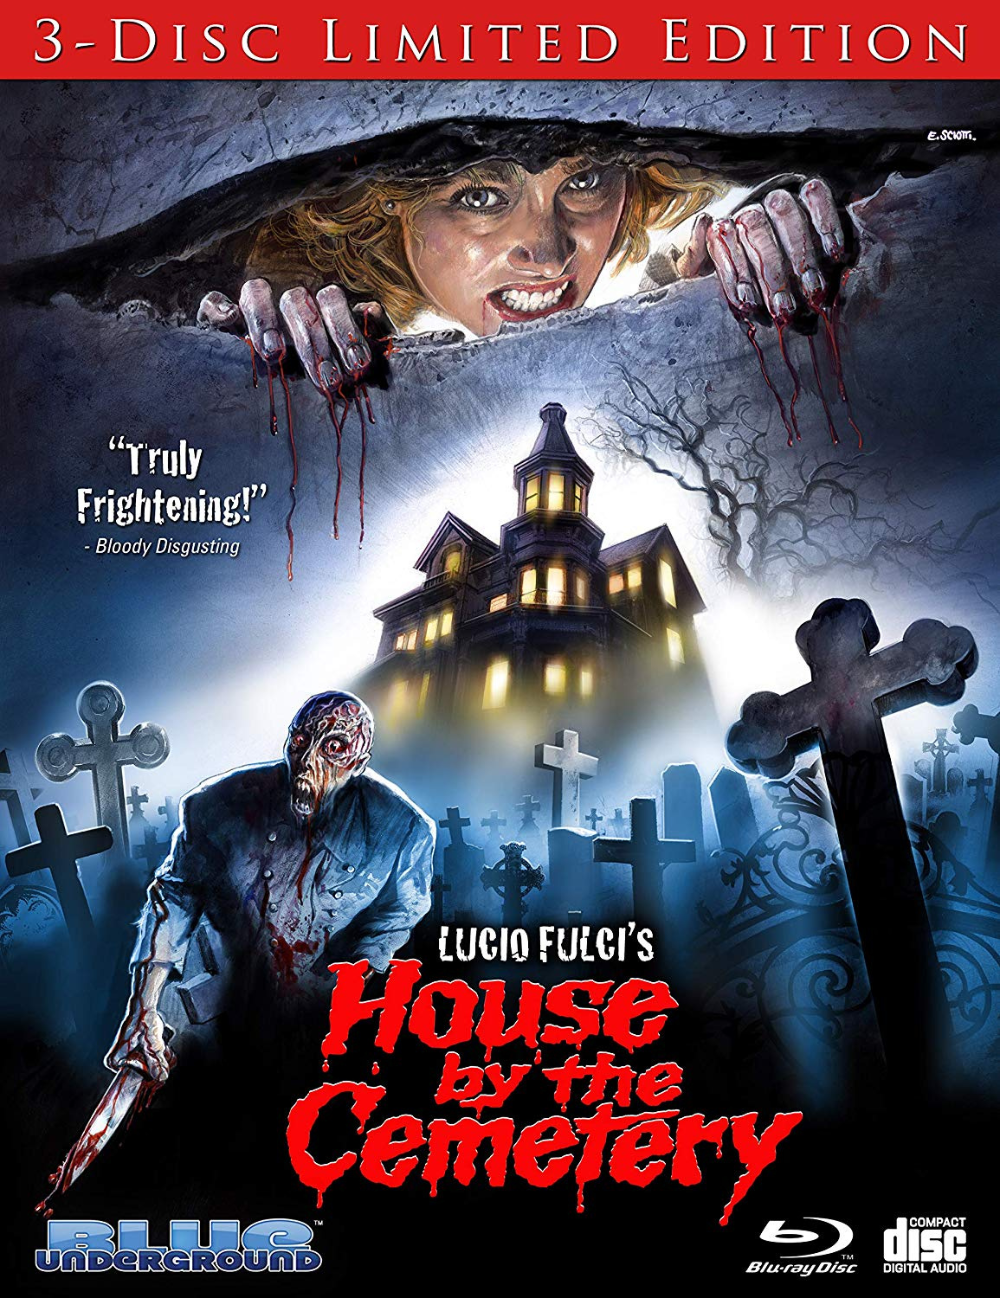 Lucio Fulci S The House By The Cemetery Blu Ray Blunderground Dvdbeaver On Patreon Horror Movie Posters Horror Horror Movies